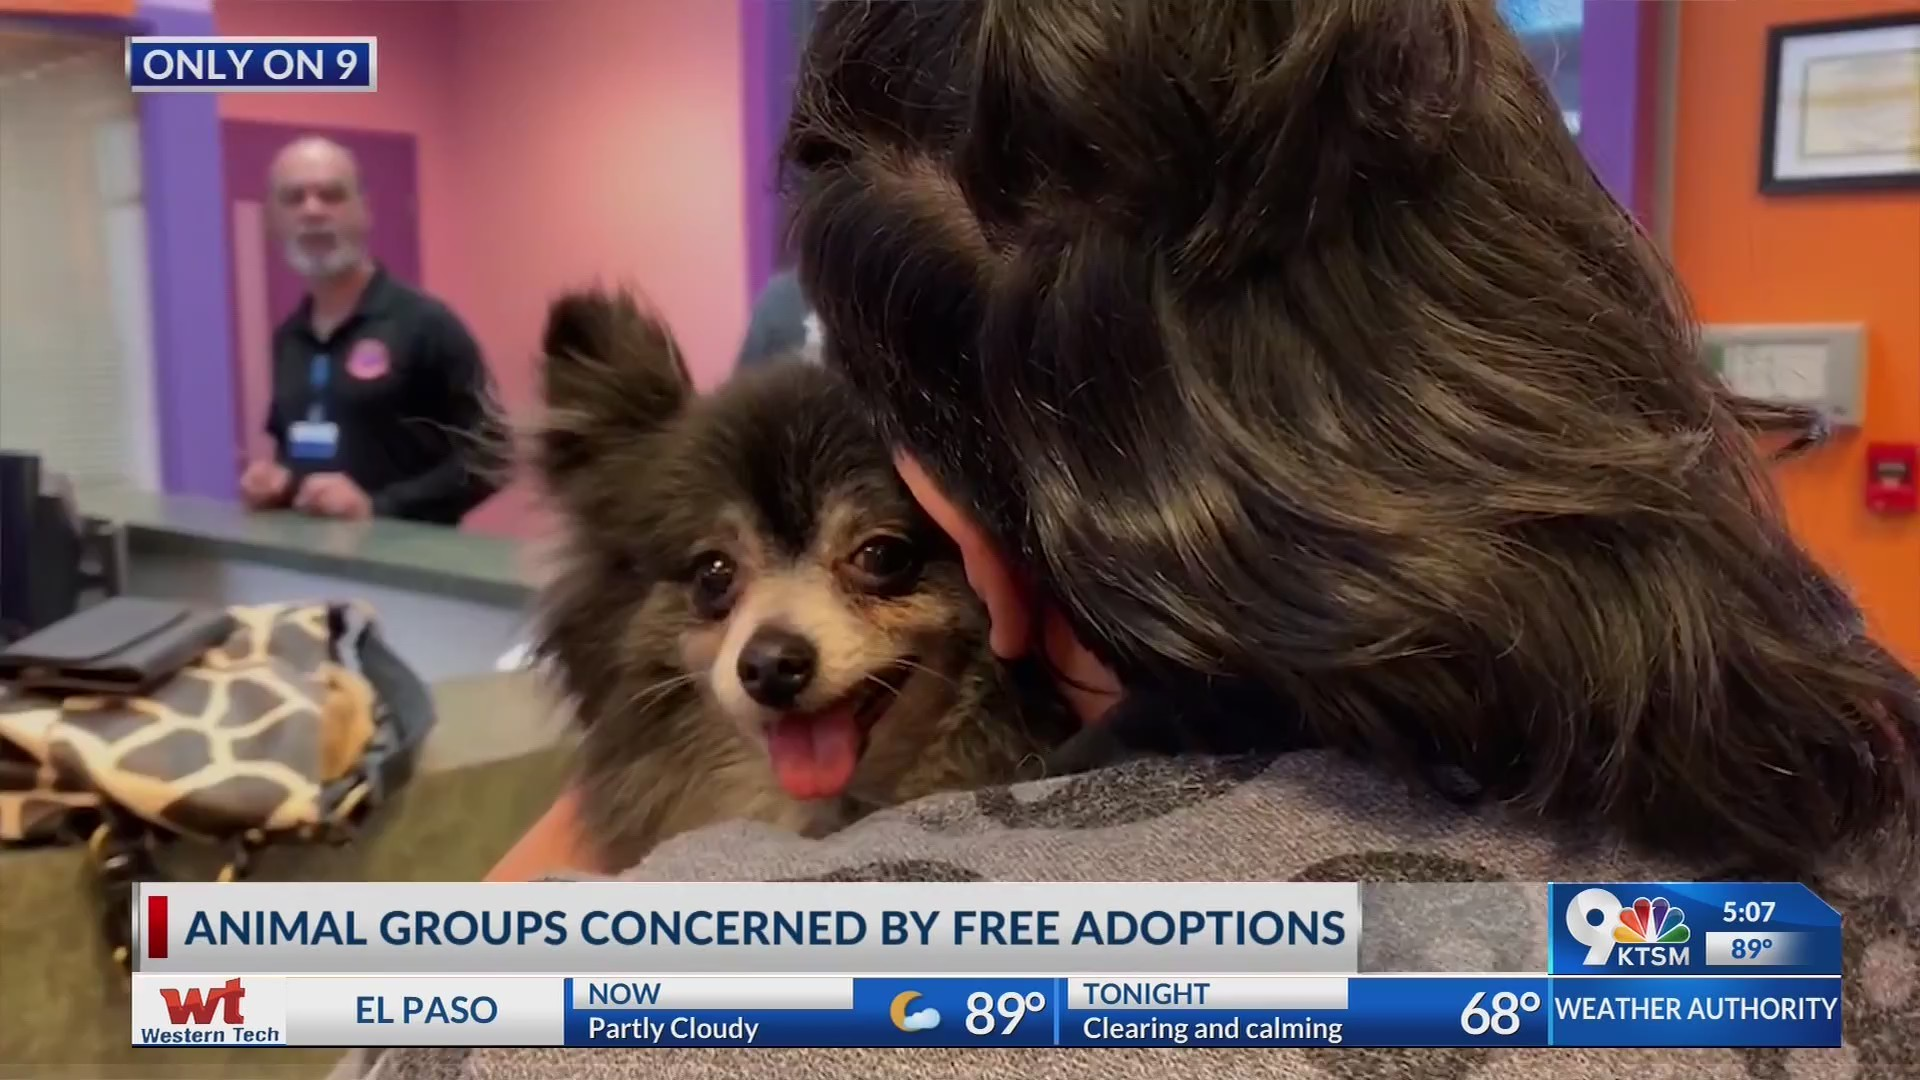 El Paso animal shelters face overcrowding; some blame free adoptions